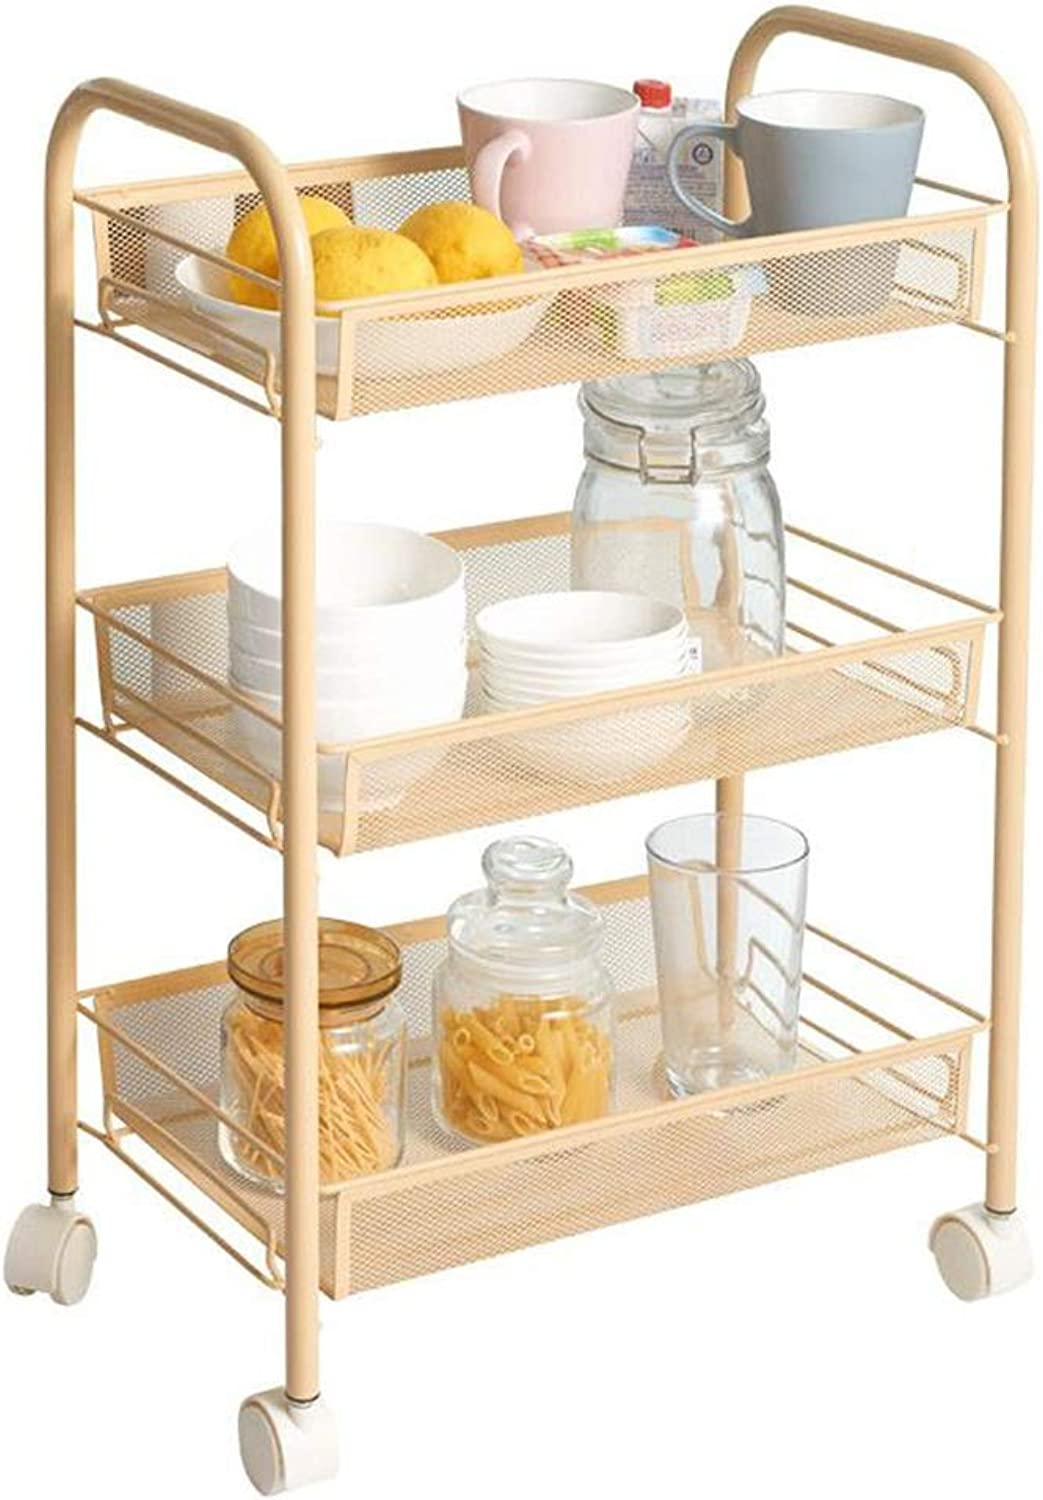 Serving Trolley Cart Kitchen Restaurant Movable Metal Net Universal Wheel Portable with Guardrail, Carrying Capacity 15kg Per Tier, 3 Sizes (color   Yellow, Size   45 x 27 x 63 cm)